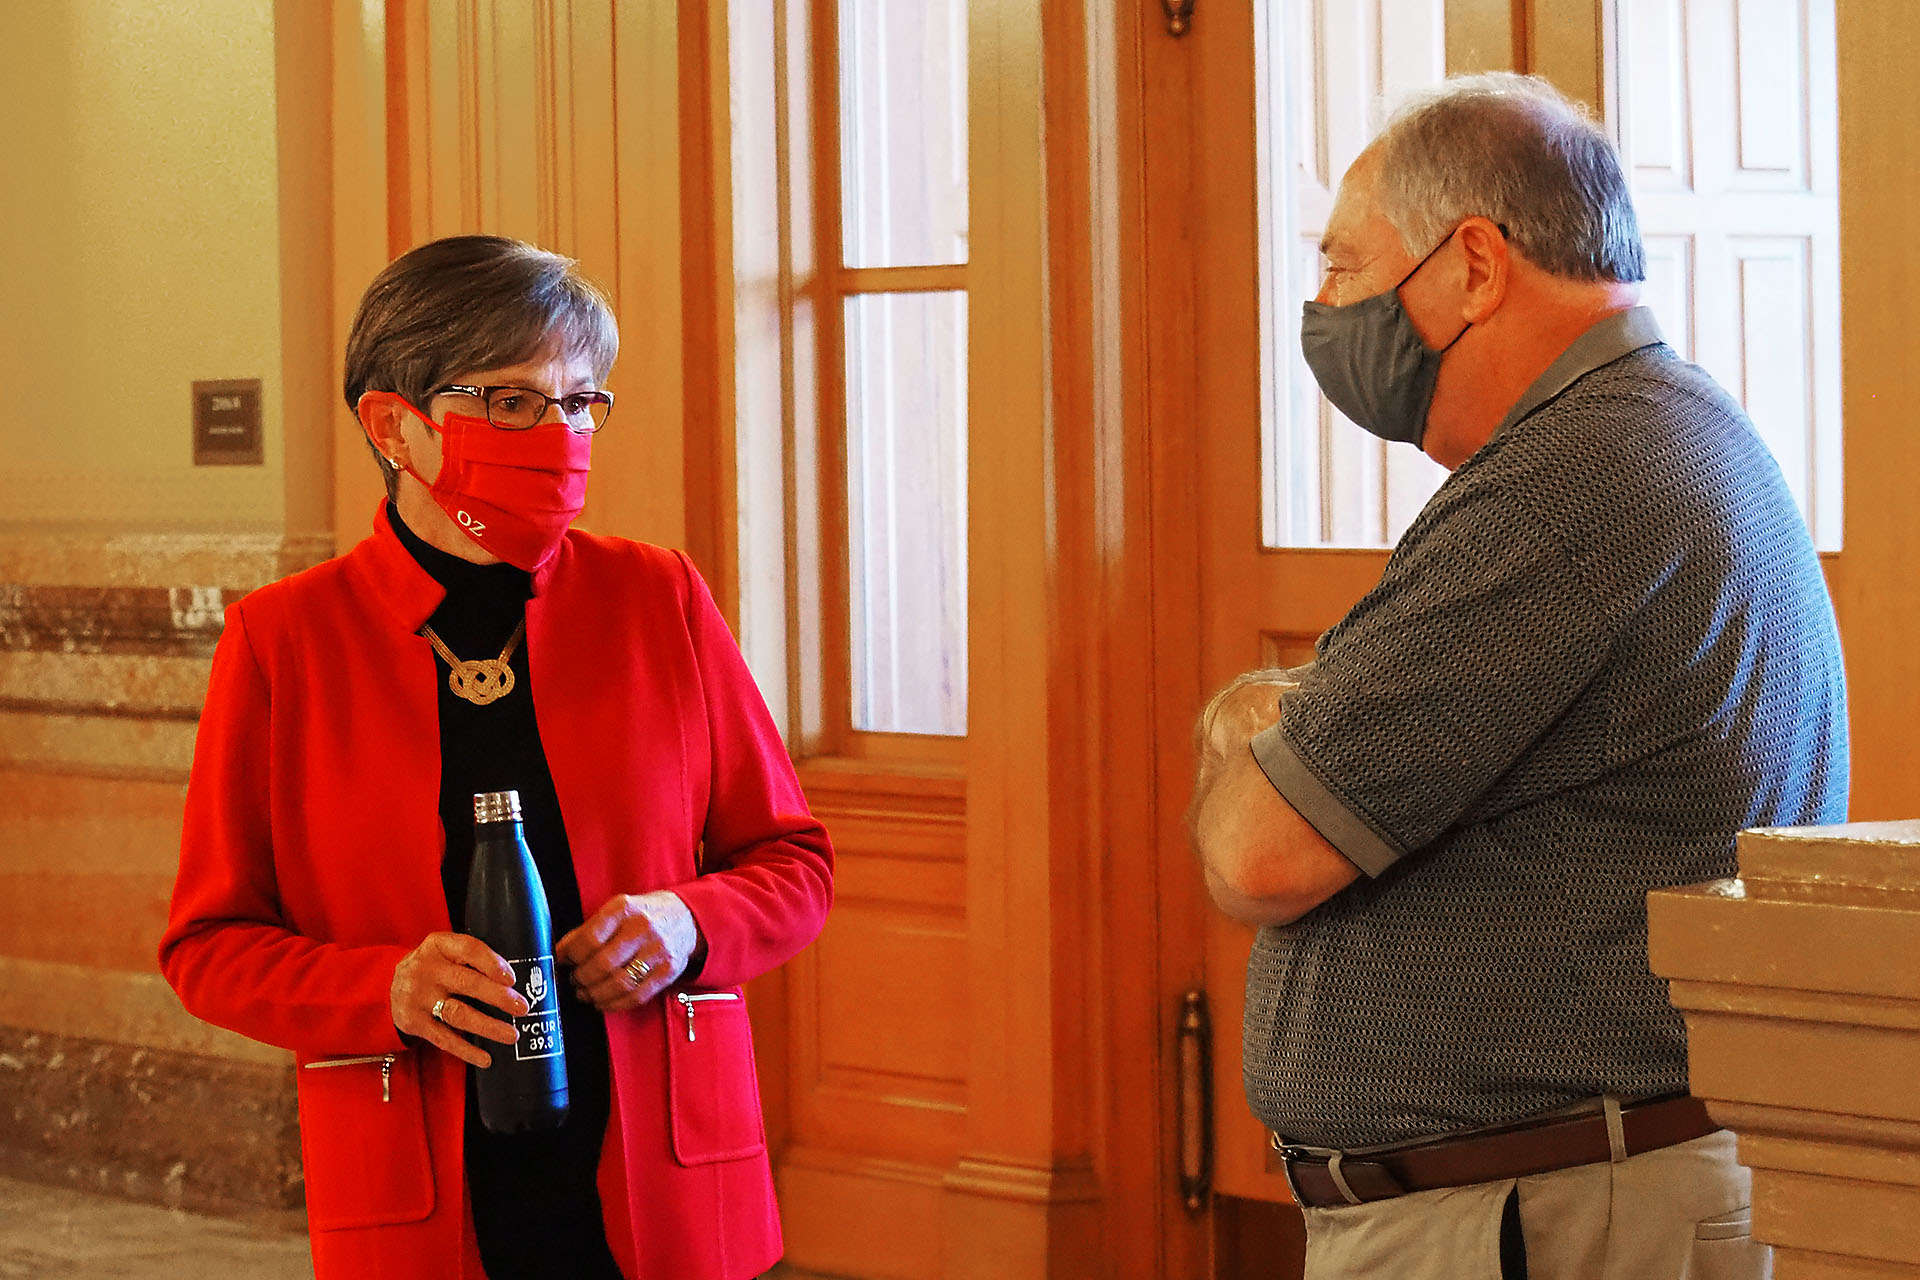 Gov. Laura Kelly, a Topeka Democrat, speaks at the Capitol with Senate Majority Leader Jim Denning, an Overland Park Republican. They disagreed on moving a portion of federal COVID-19 aid into the state's shrinking unemployment trust fund. (Sherman Smith/Kansas Reflector)